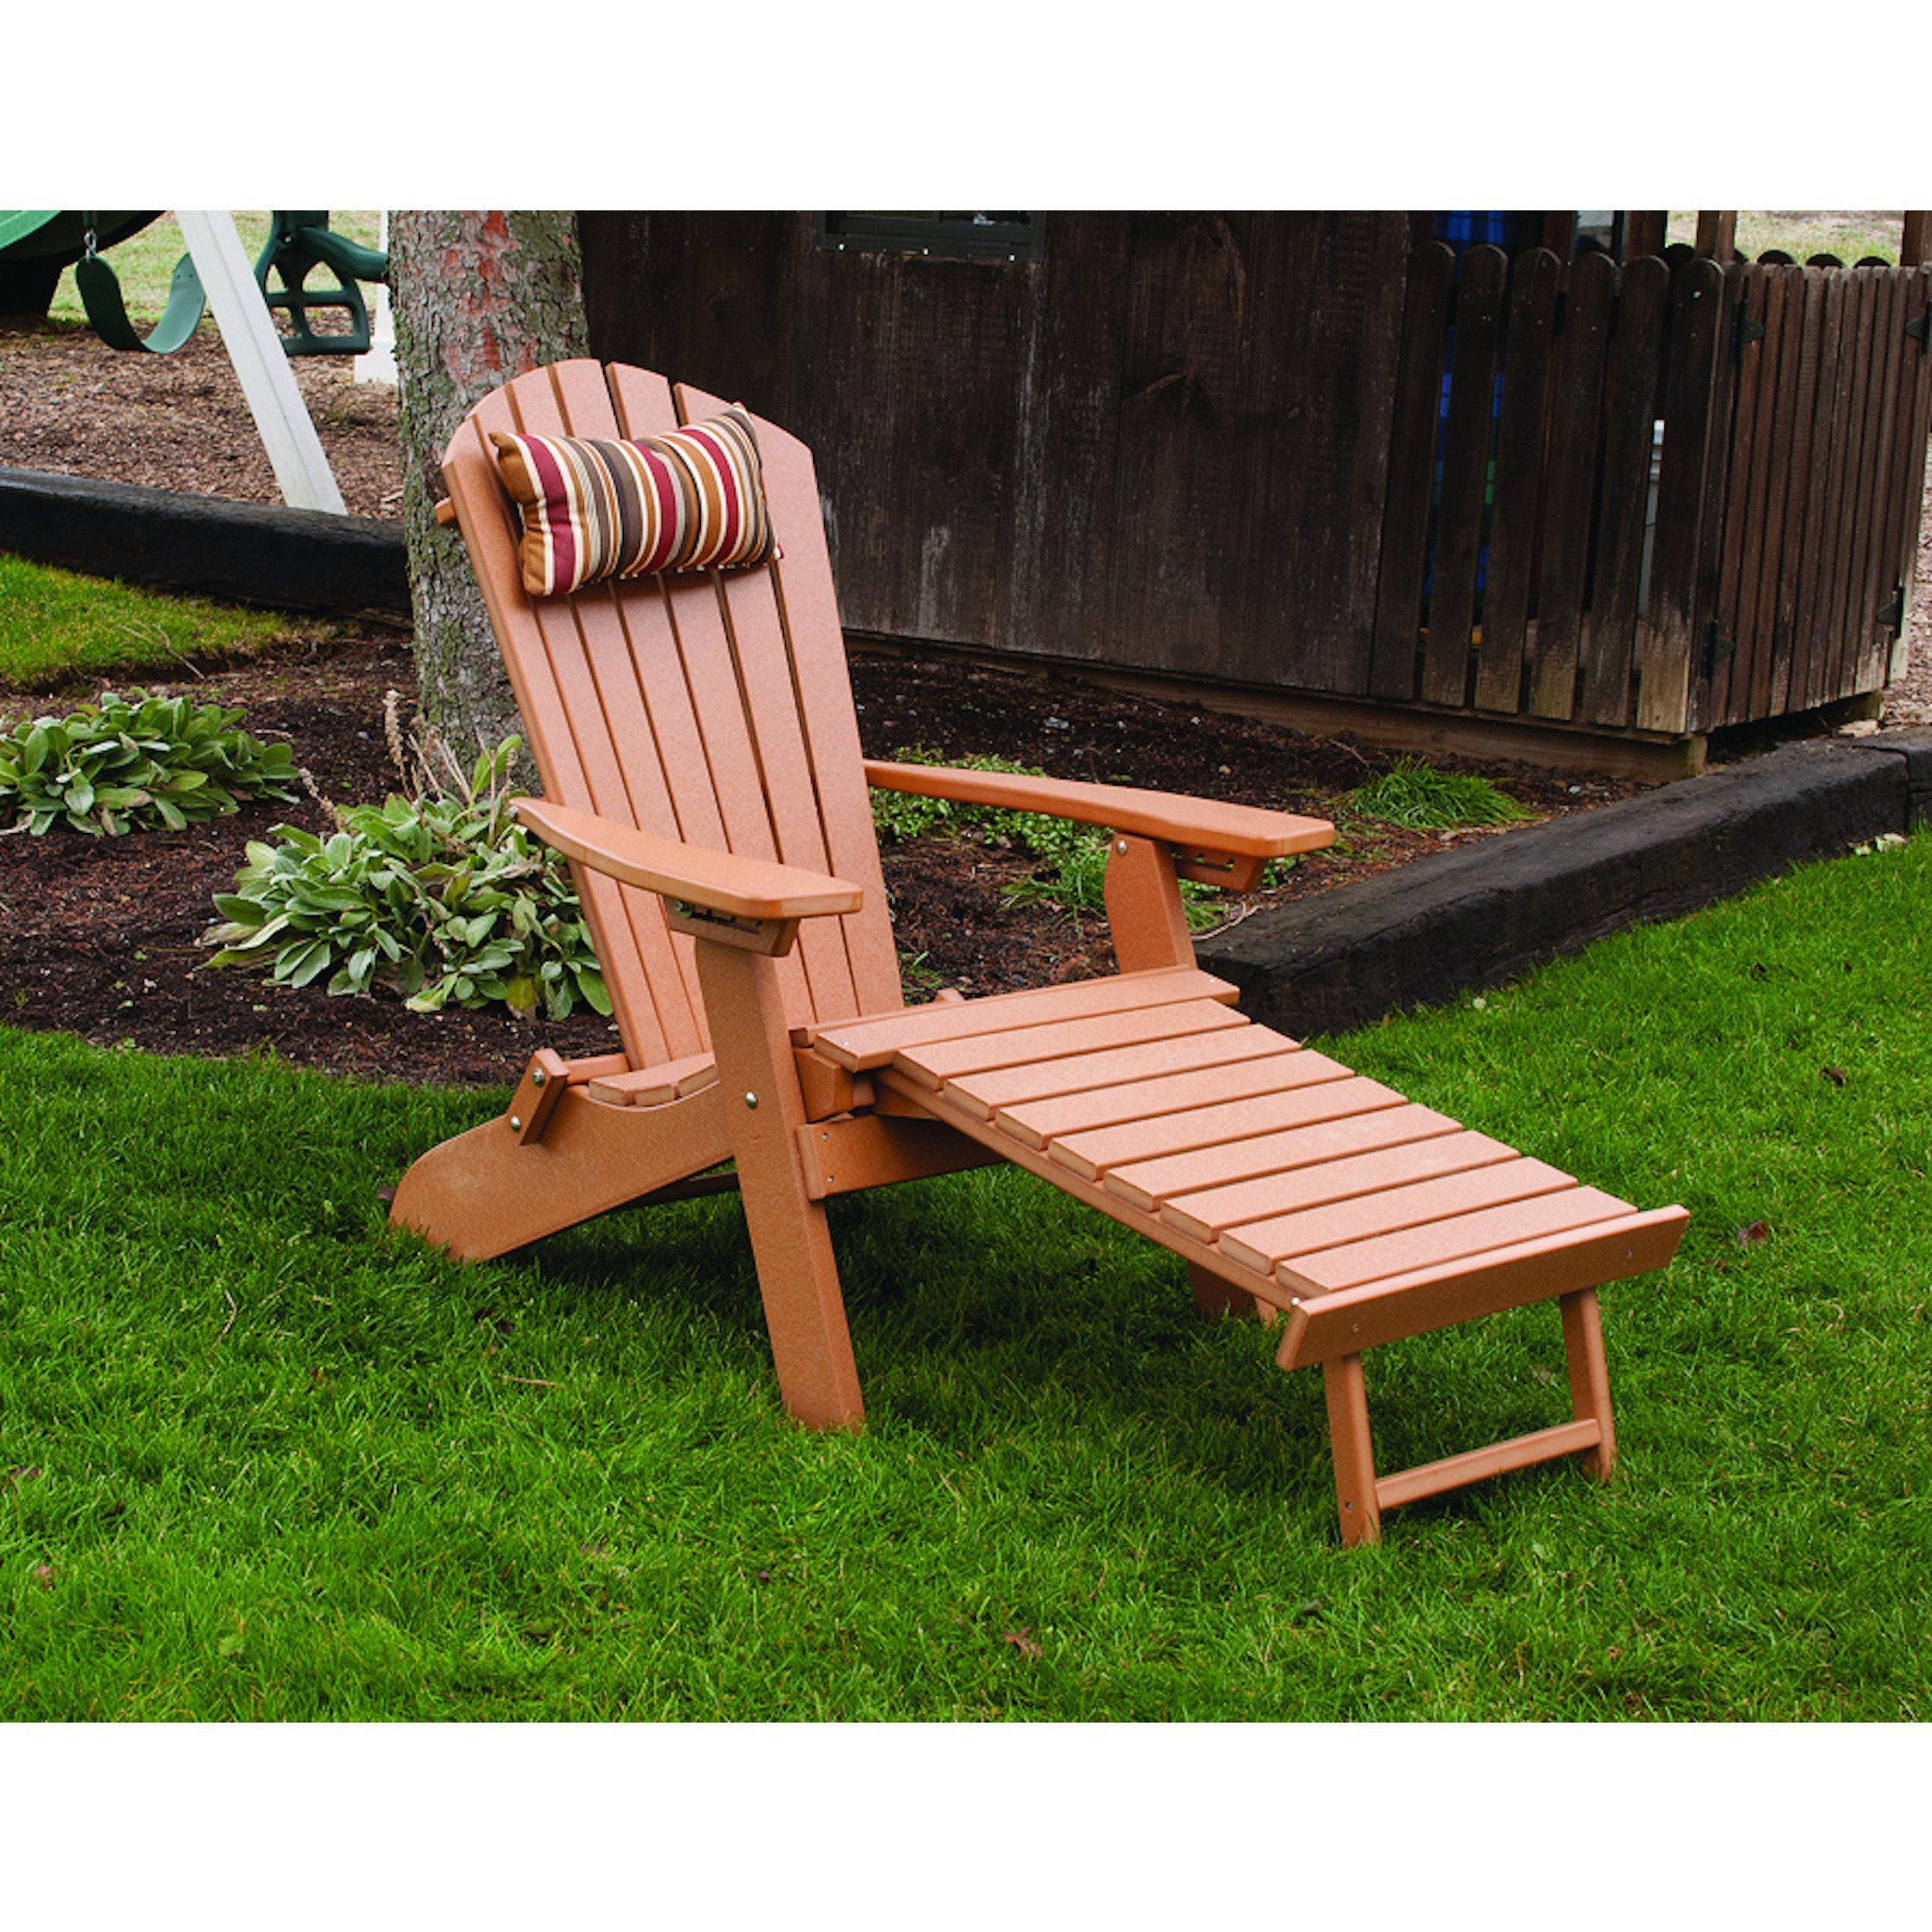 A L Furniture Co Folding Reclining Recycled Plastic Adirondack Chair W Pullout Ottoman Ships Free In 5 7 Business Days Recycled Plastic Adirondack Chairs Plastic Adirondack Chairs Outdoor Chairs